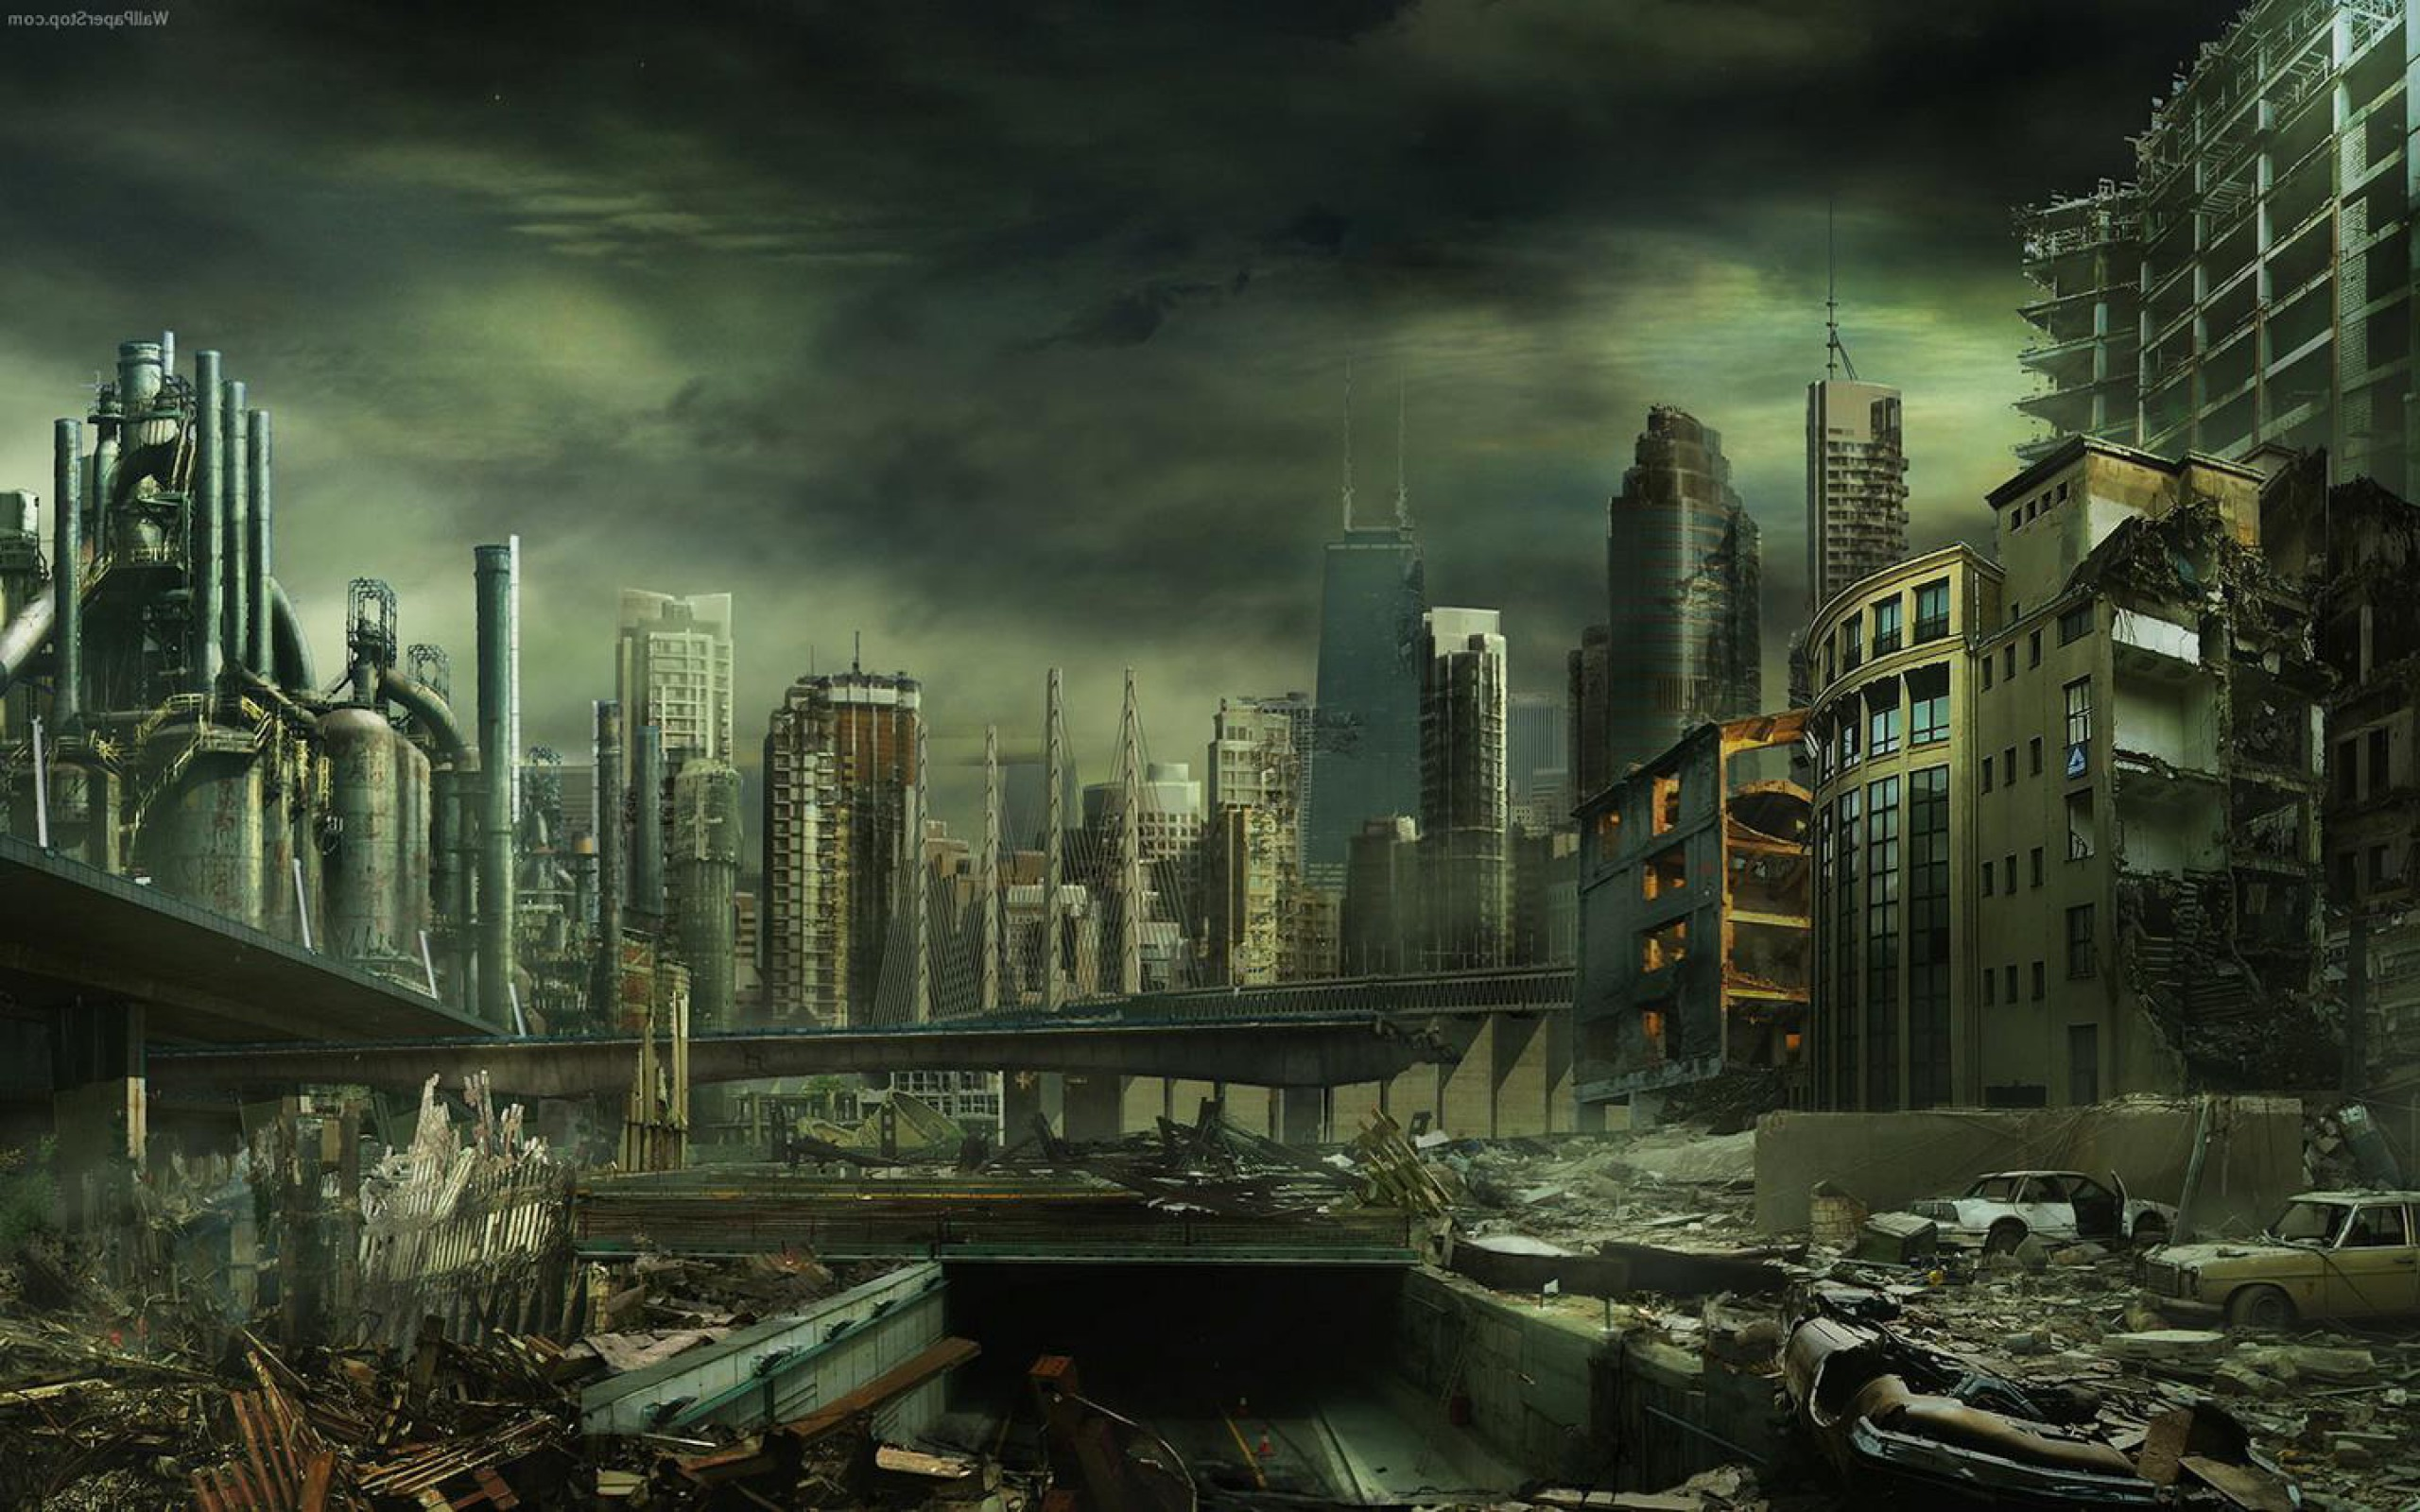 Destroyed City Wallpapers   Full HD wallpaper search 2560x1600